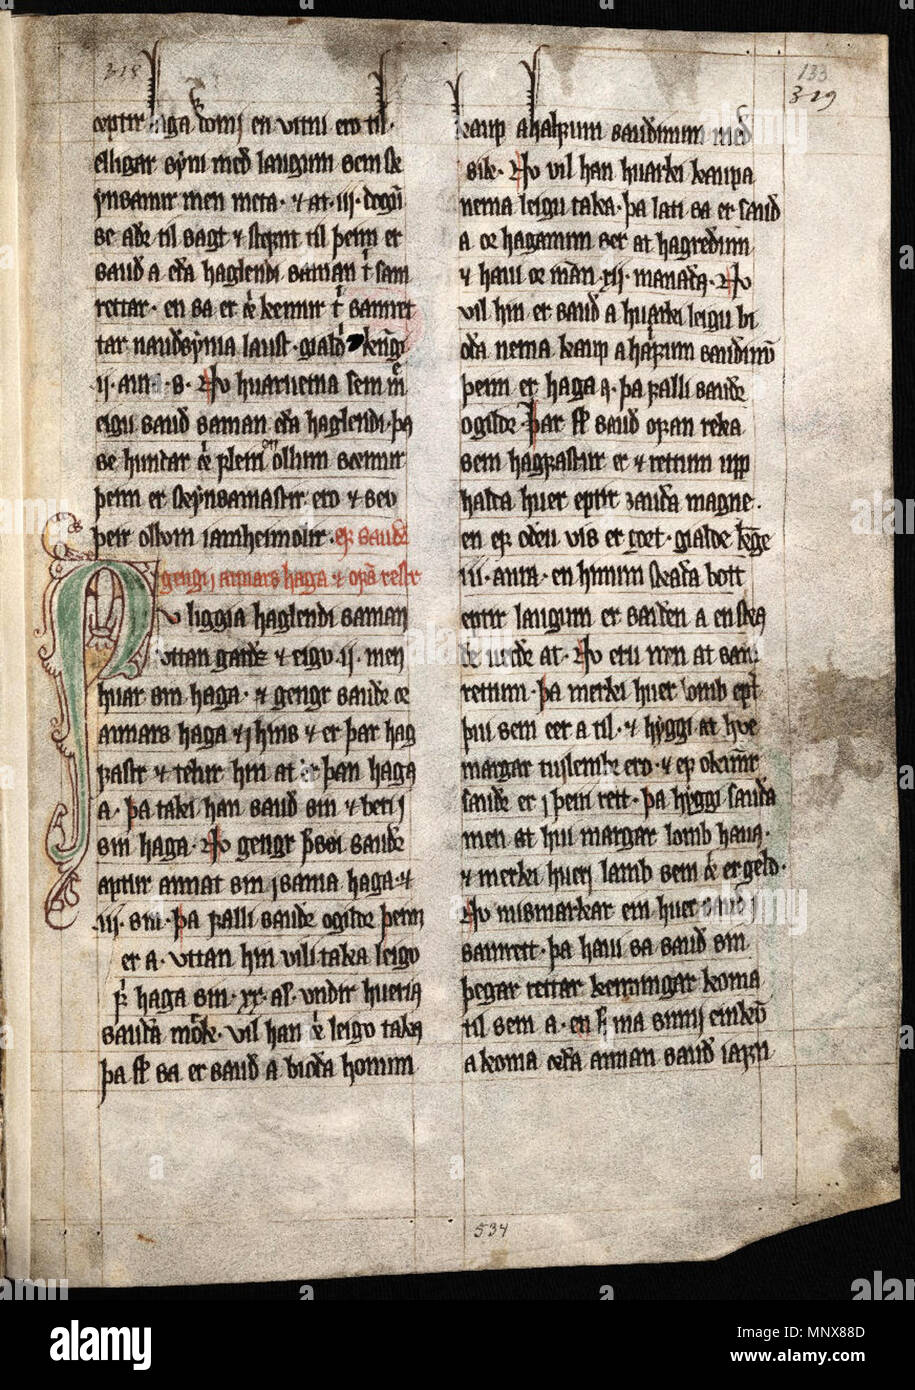 The Sheep Letter for the Faroe Islands of 24 June 1298, in the 'Book of  Lund'. 24 June 1298. Unknown 1114 Sheep Letter, p 2